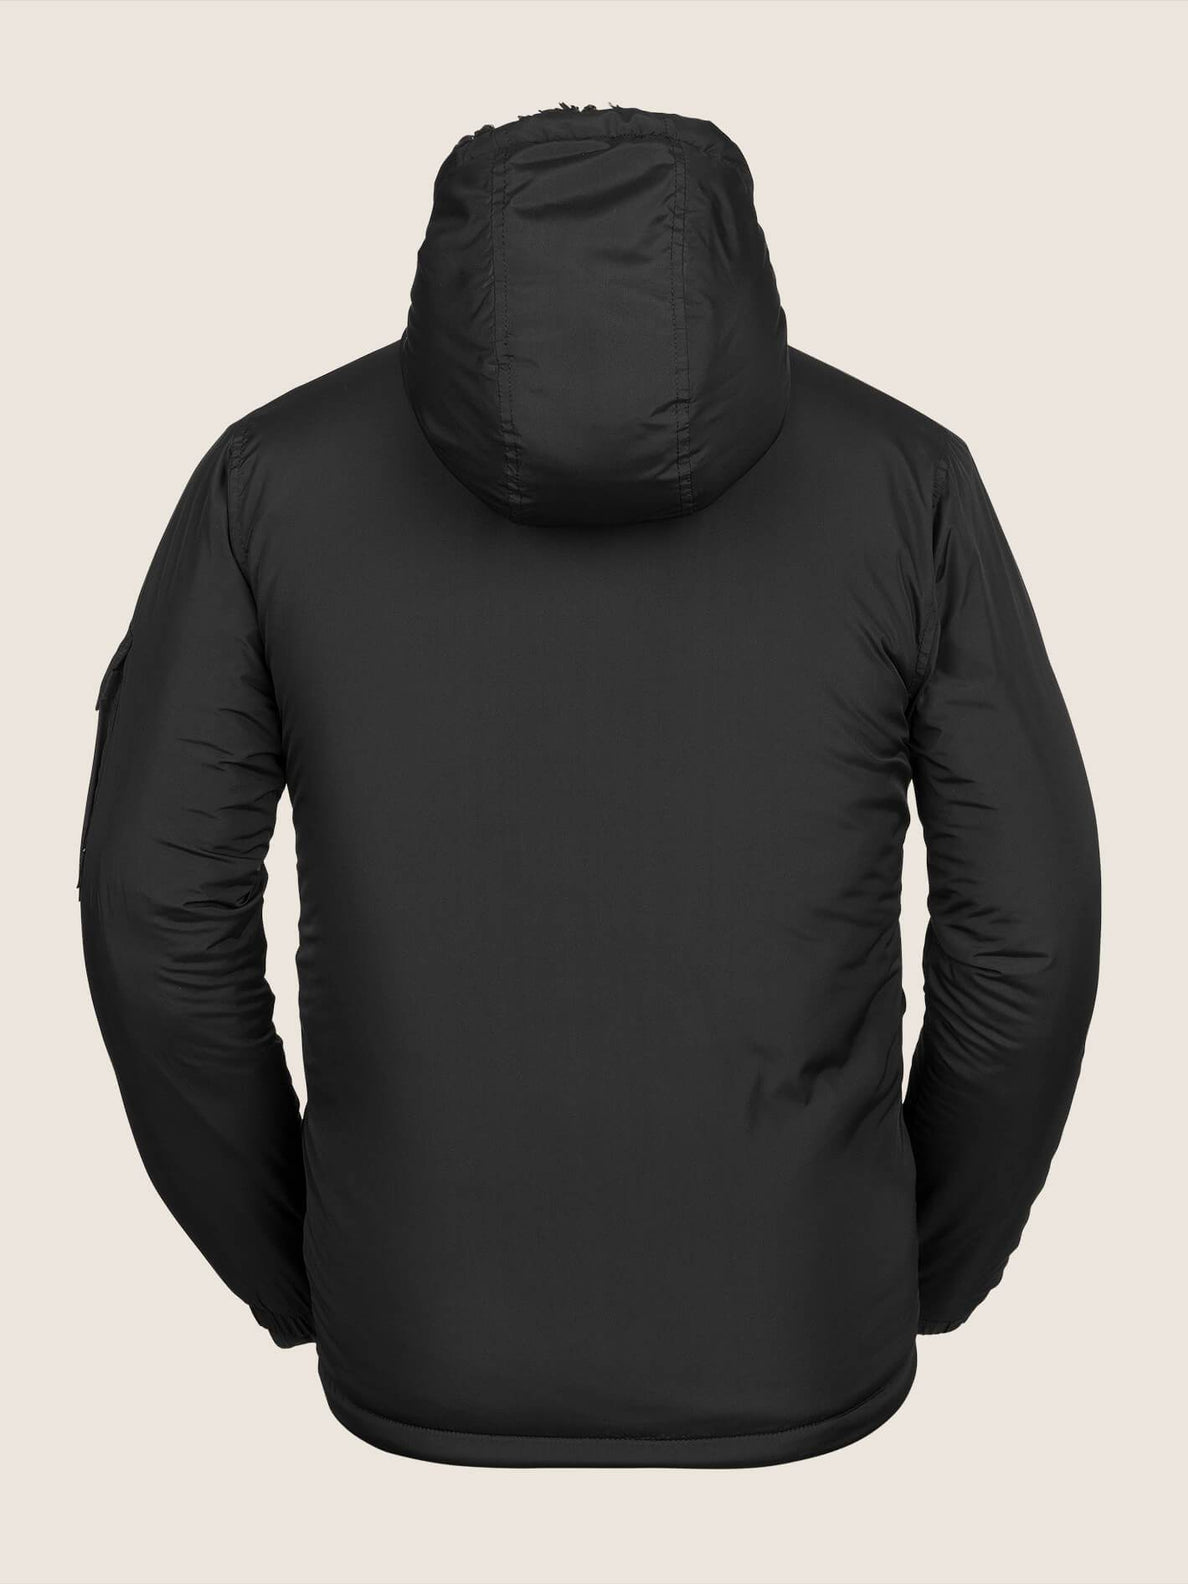 Morzinski Jacket - Black